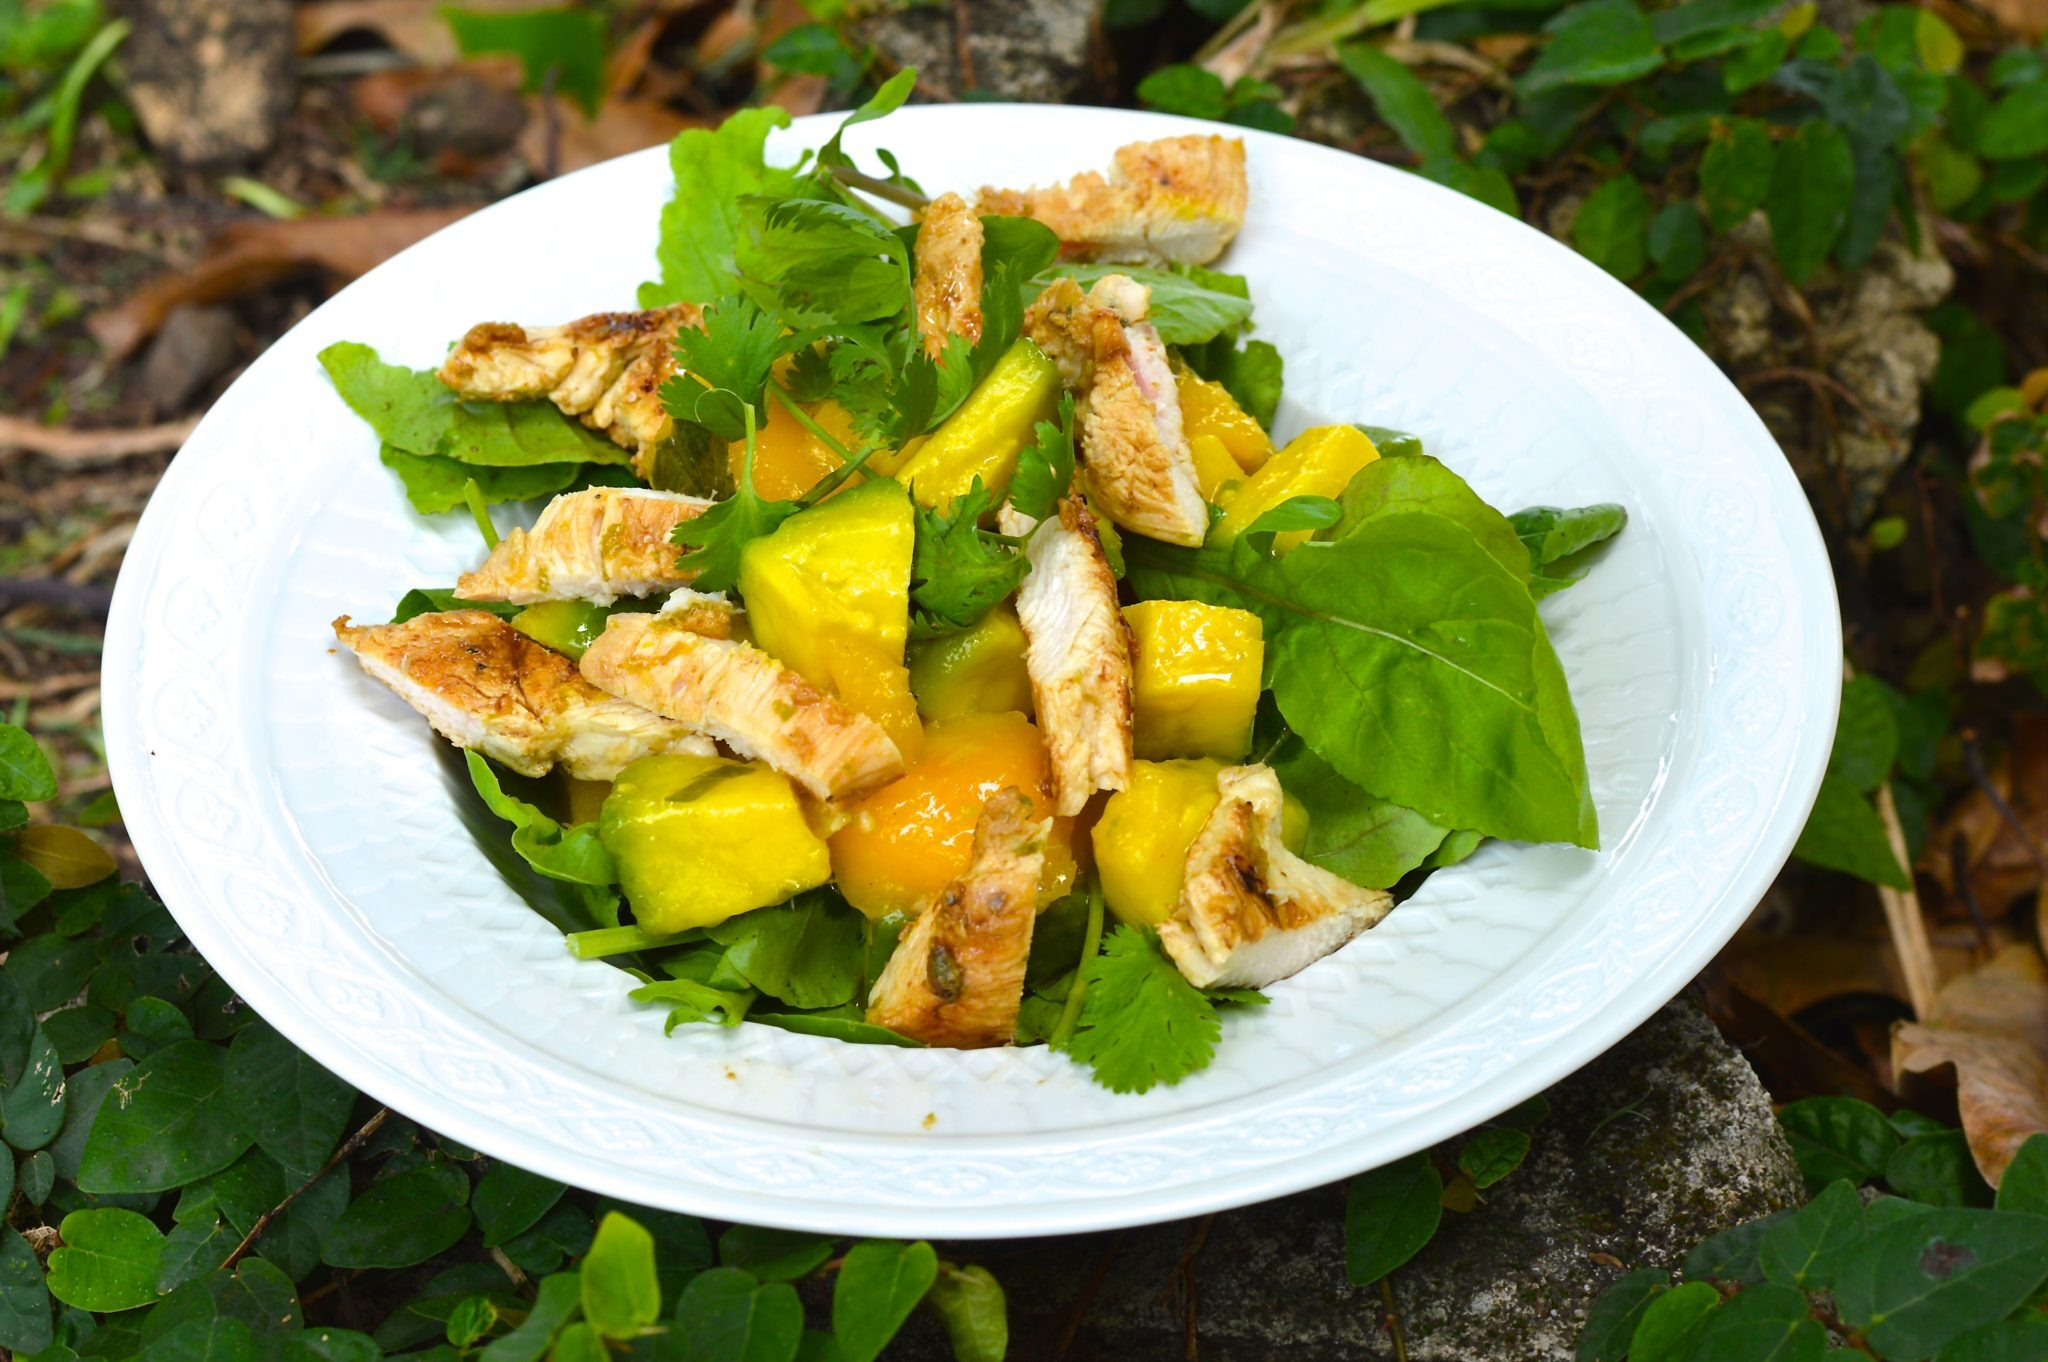 Grilled chicken salad recipe with mango and avocado